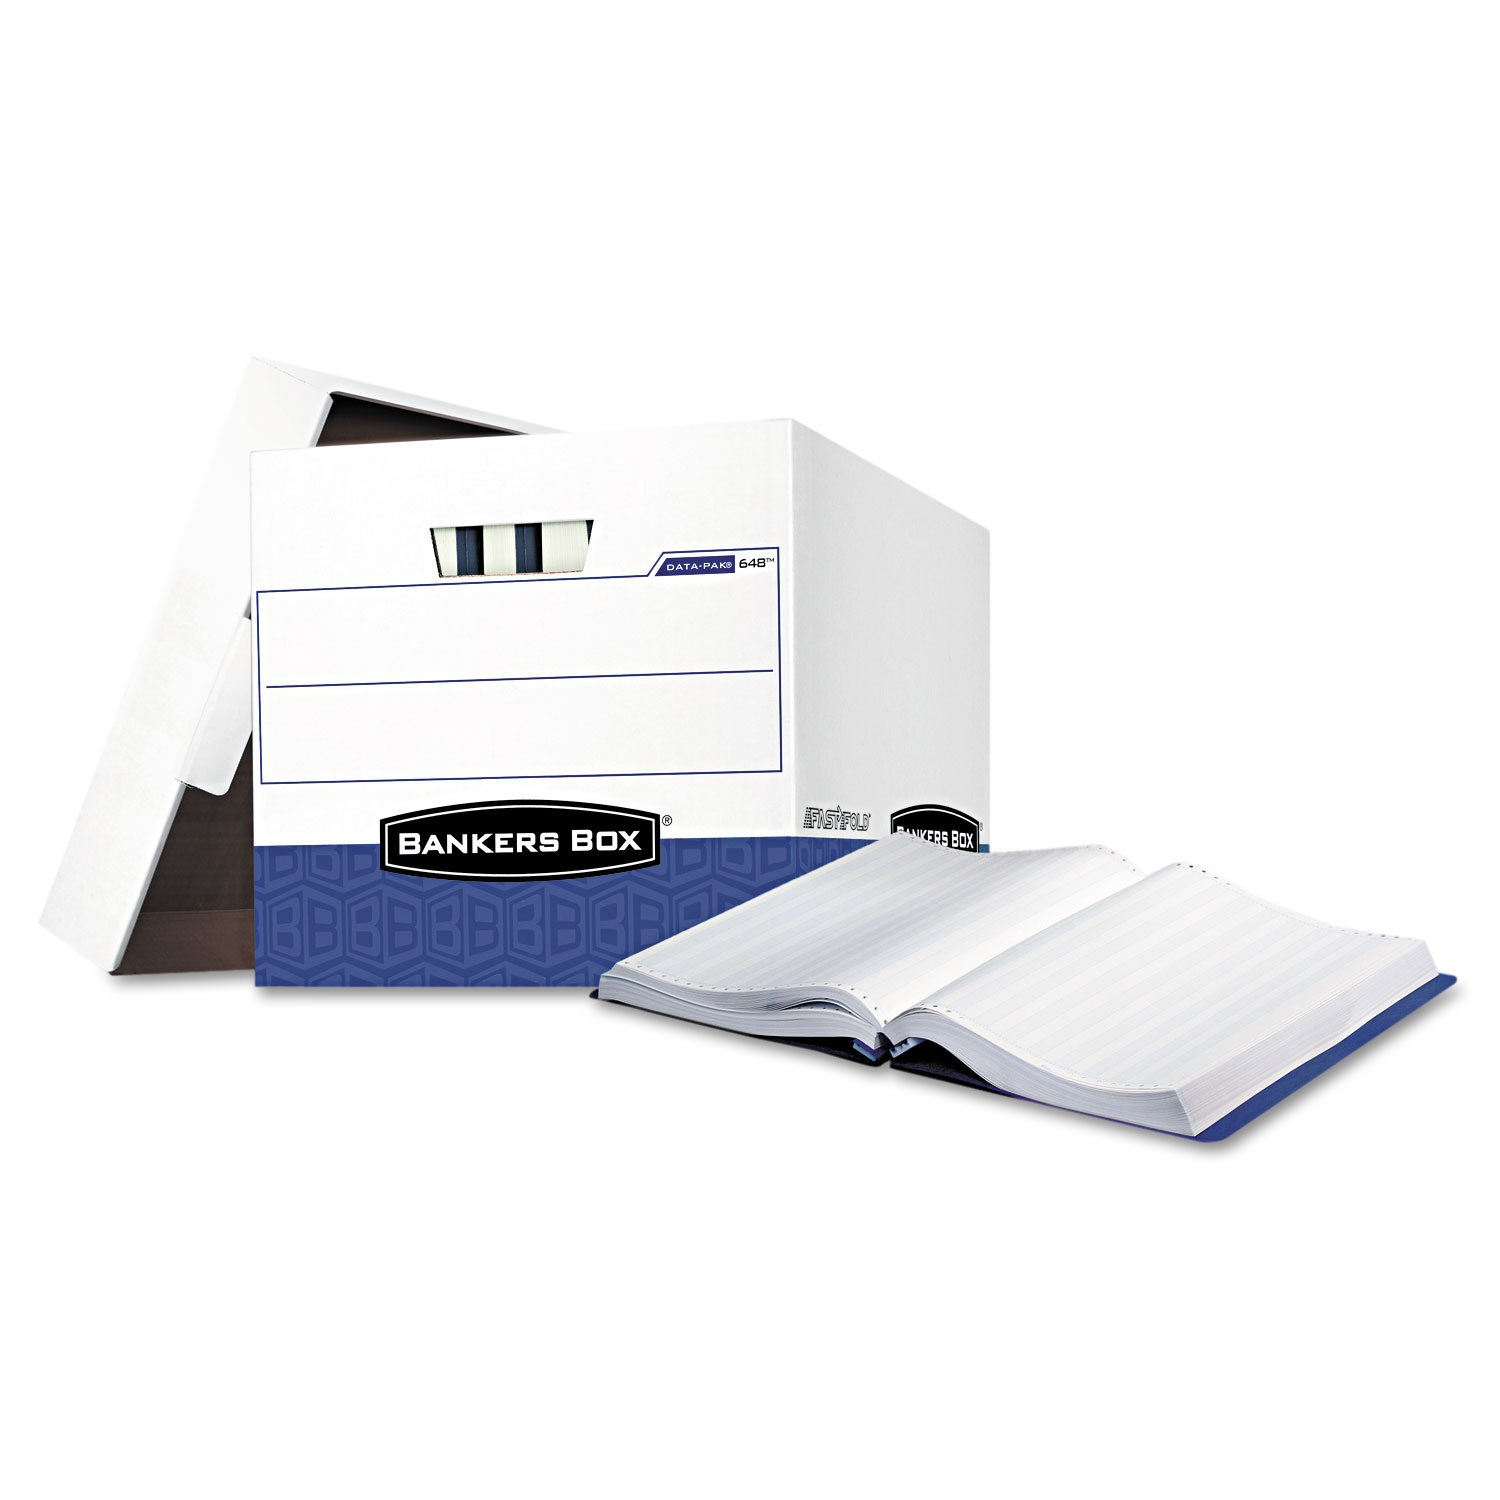 Bankers Boxamp;reg; - Data-Pak Storage Box, 12-3/4 x 16 x 12-1/2, White/Blue, 12/Ctn - Sold As 1 Carton - Ideal for stacking and storing computer printout binders.